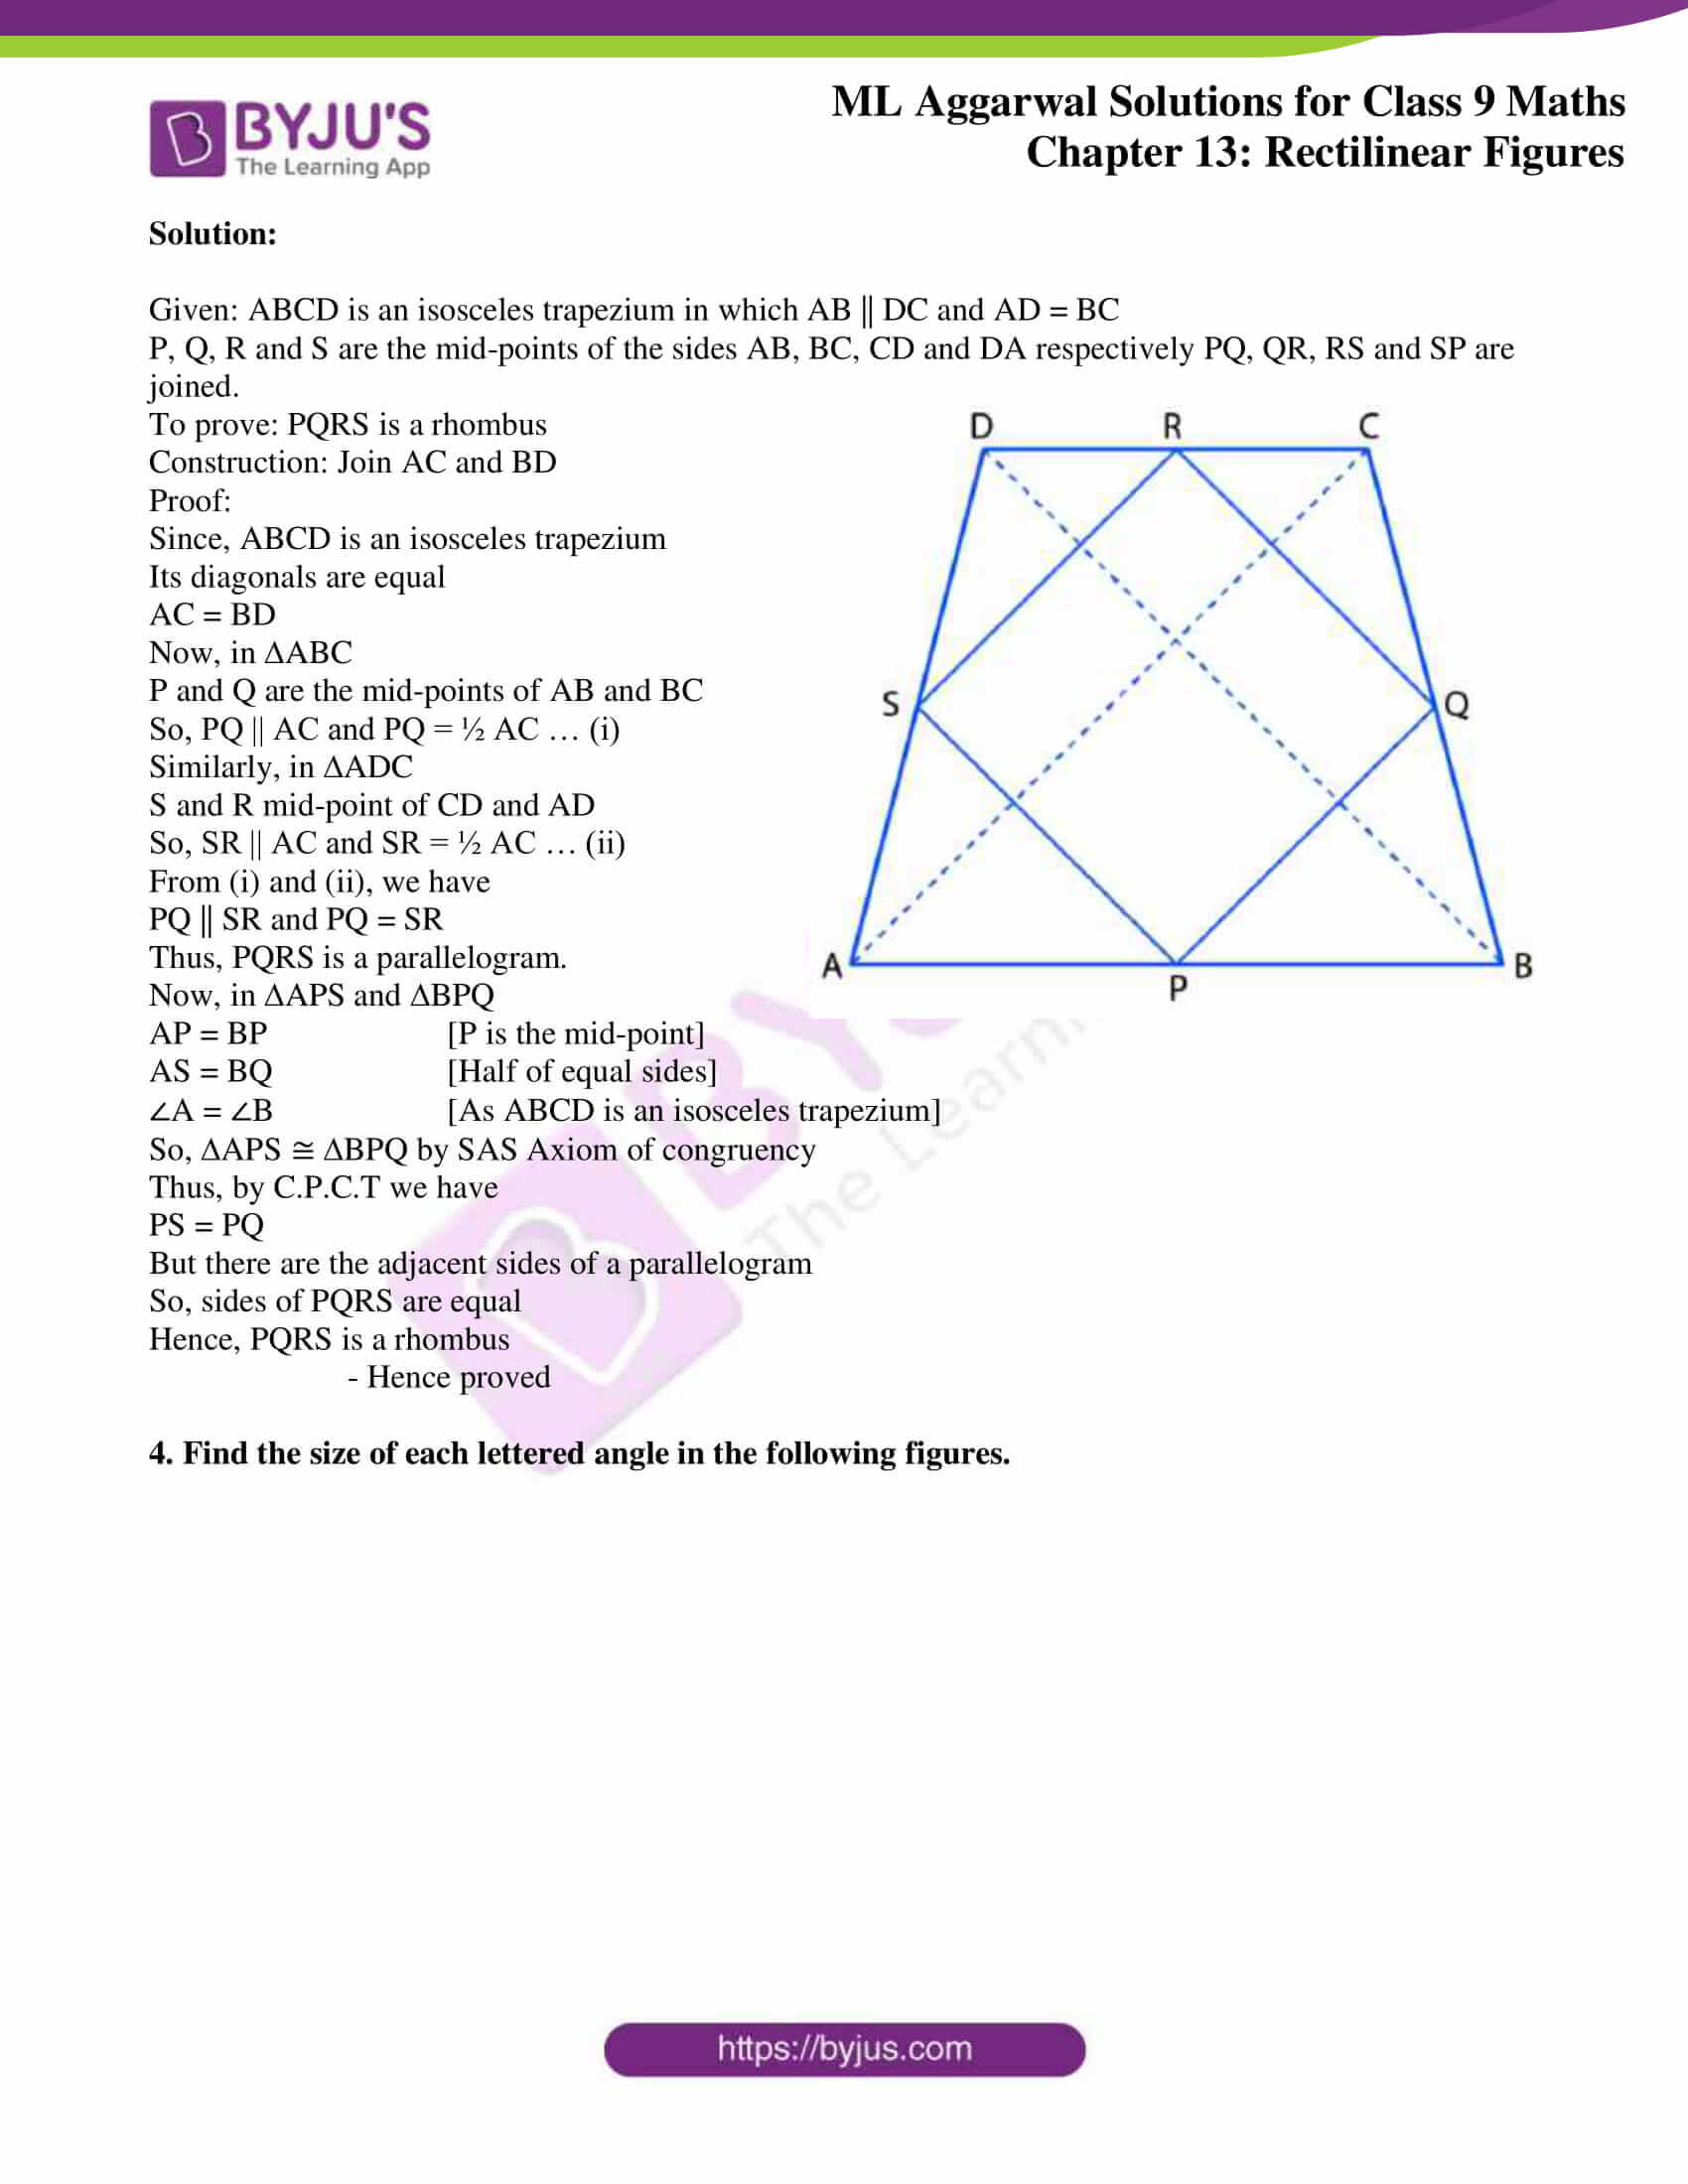 ml aggarwal solutions for class 9 maths chapter 13 40